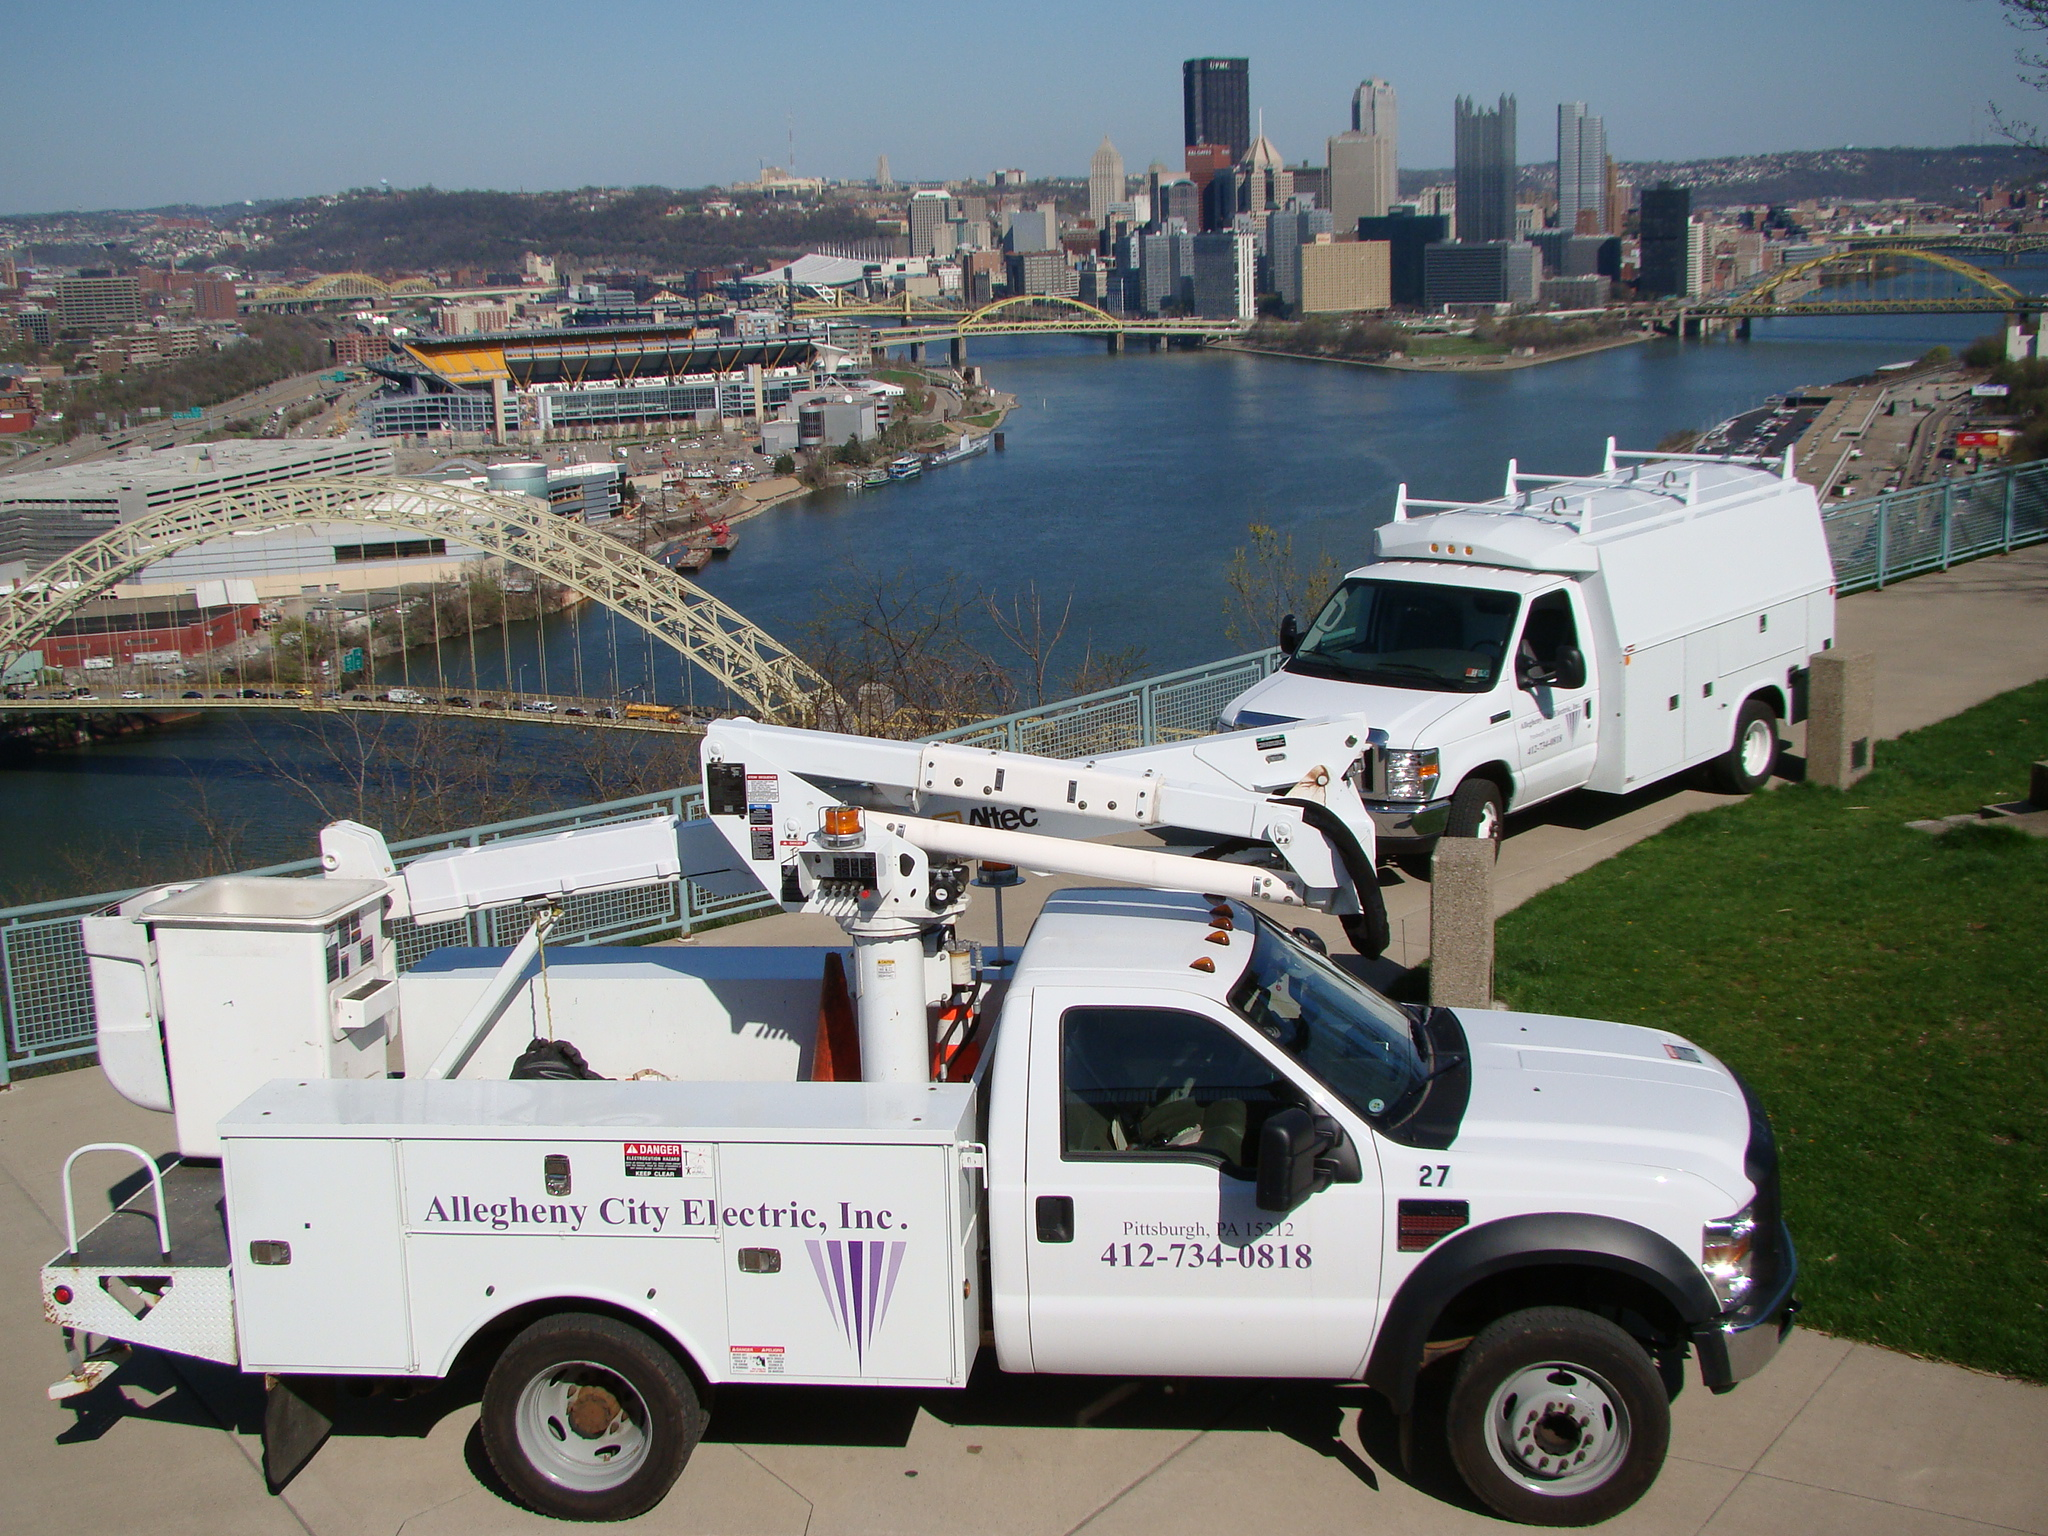 Allegheny City Electric – Electrical Contracting Services